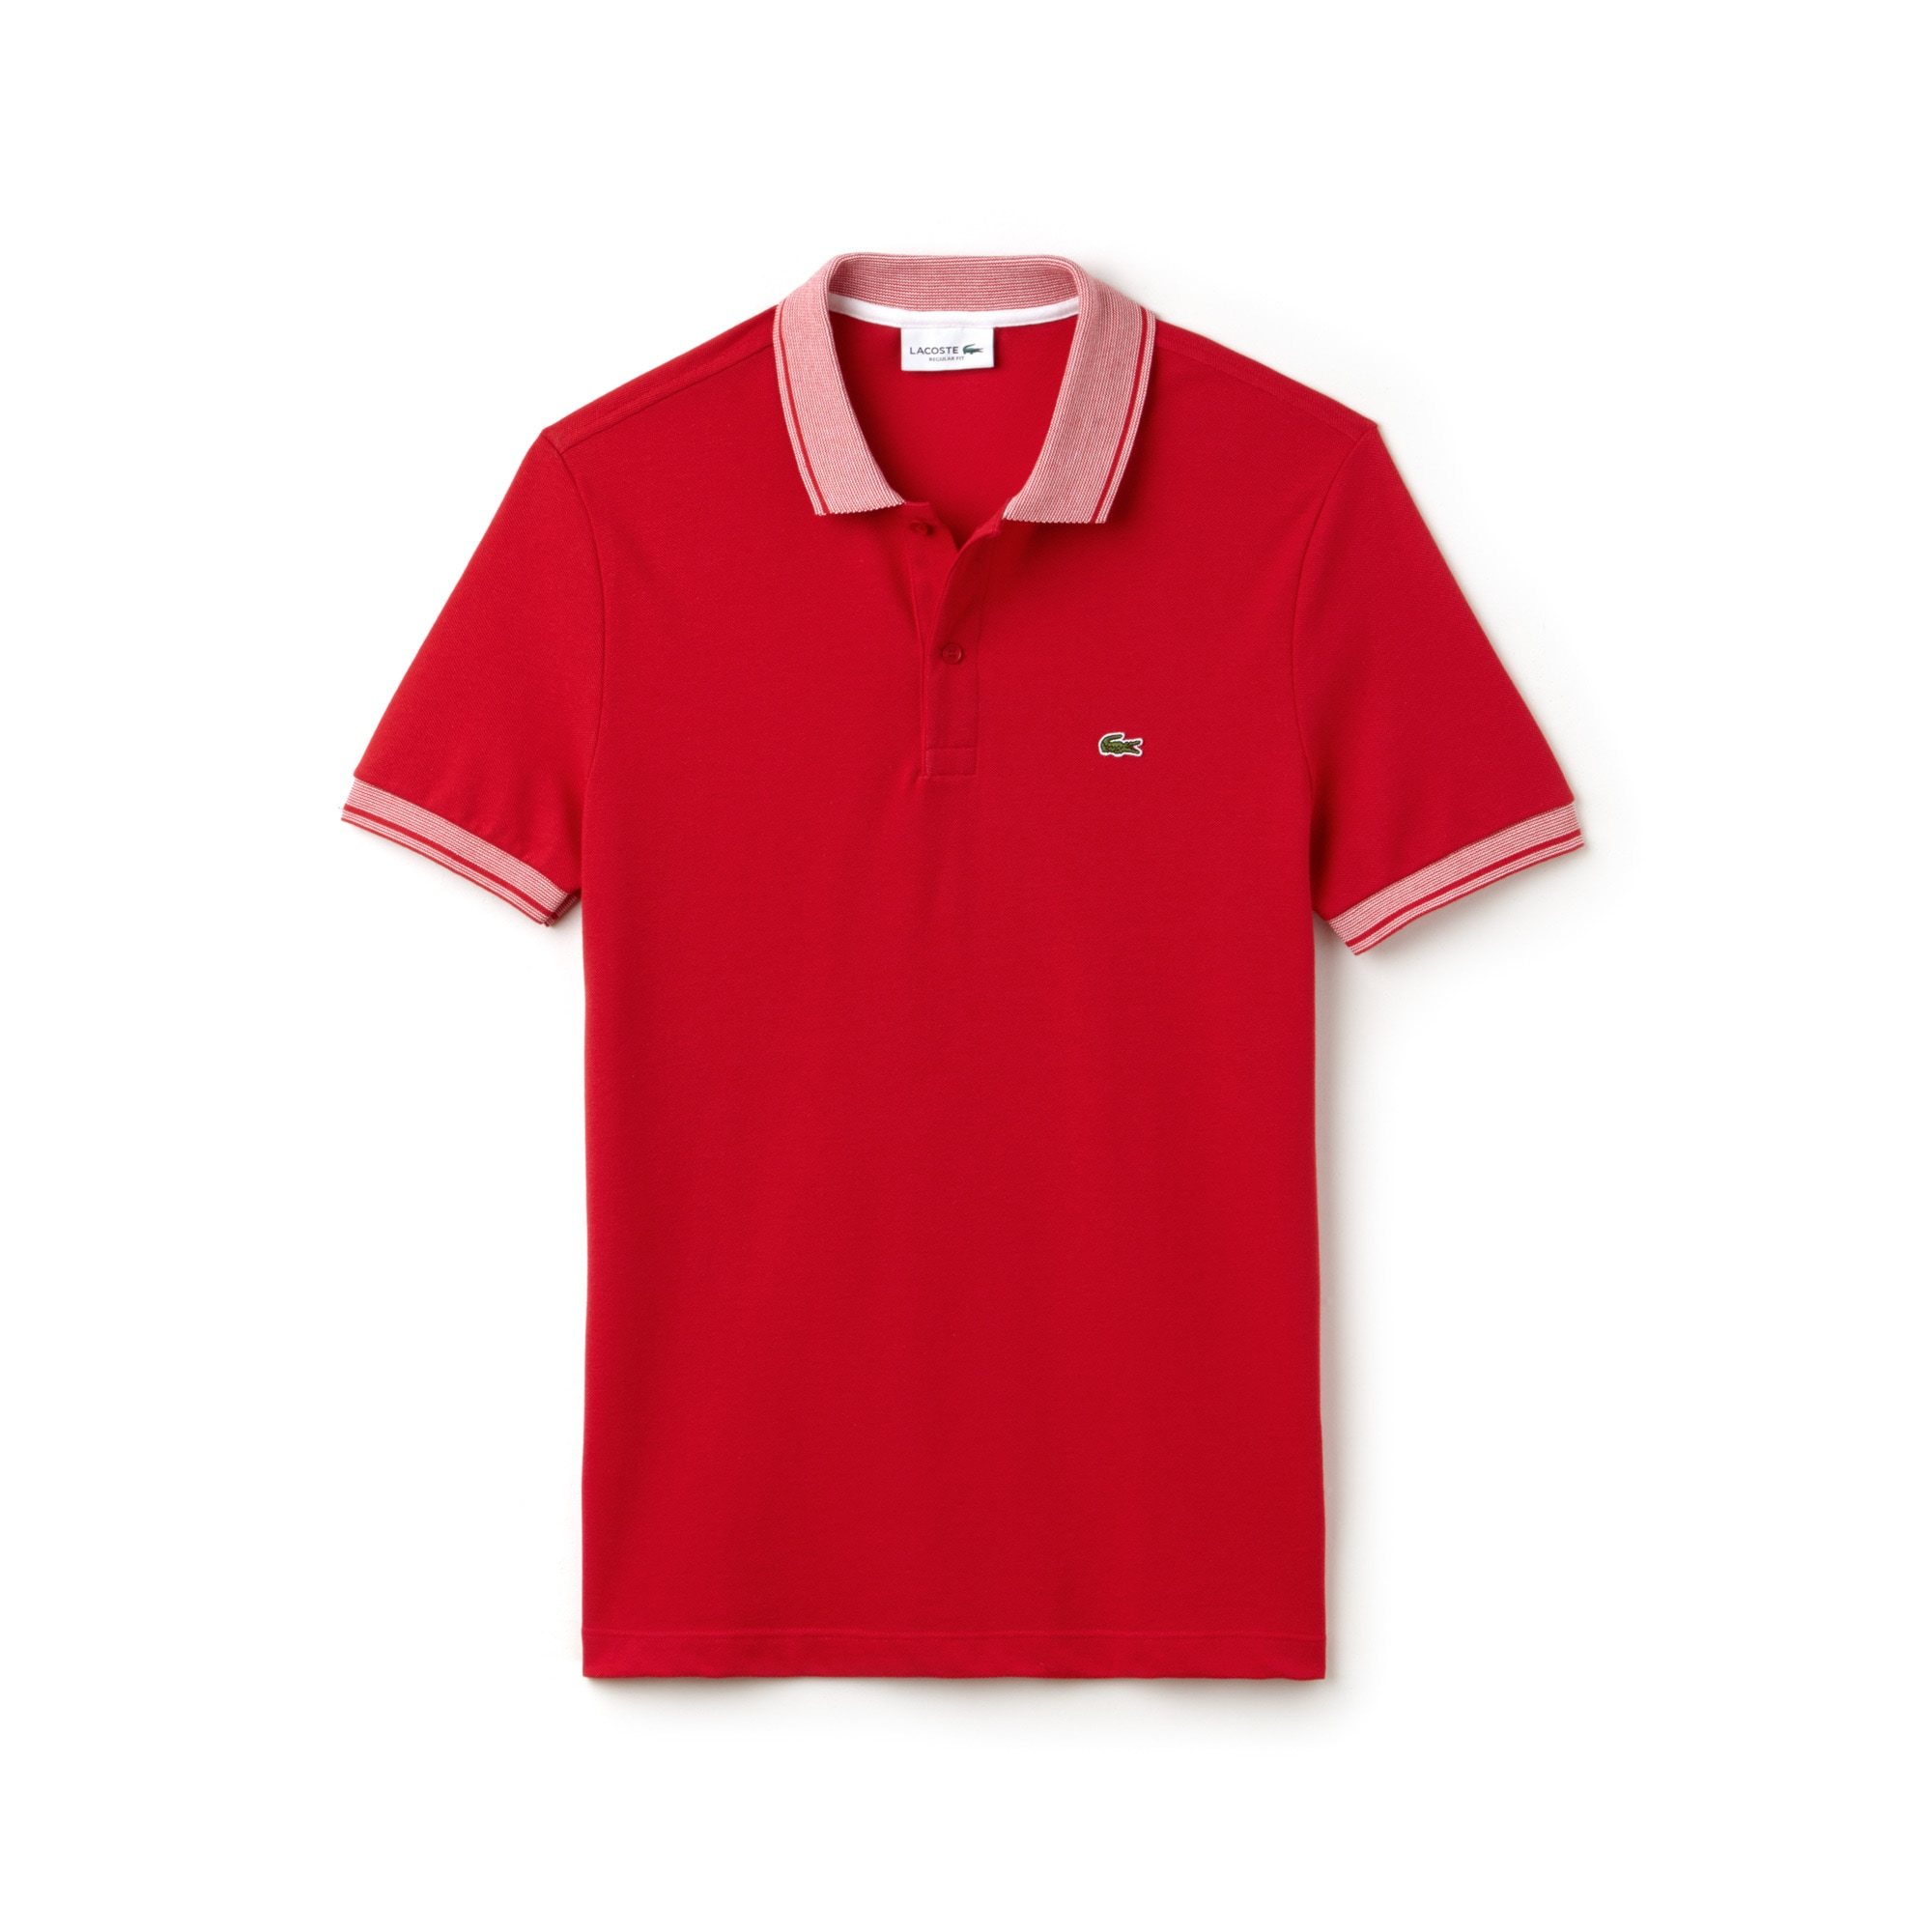 Men's Lacoste Regular Fit Piped Cotton Petit Piqué Polo Shirt